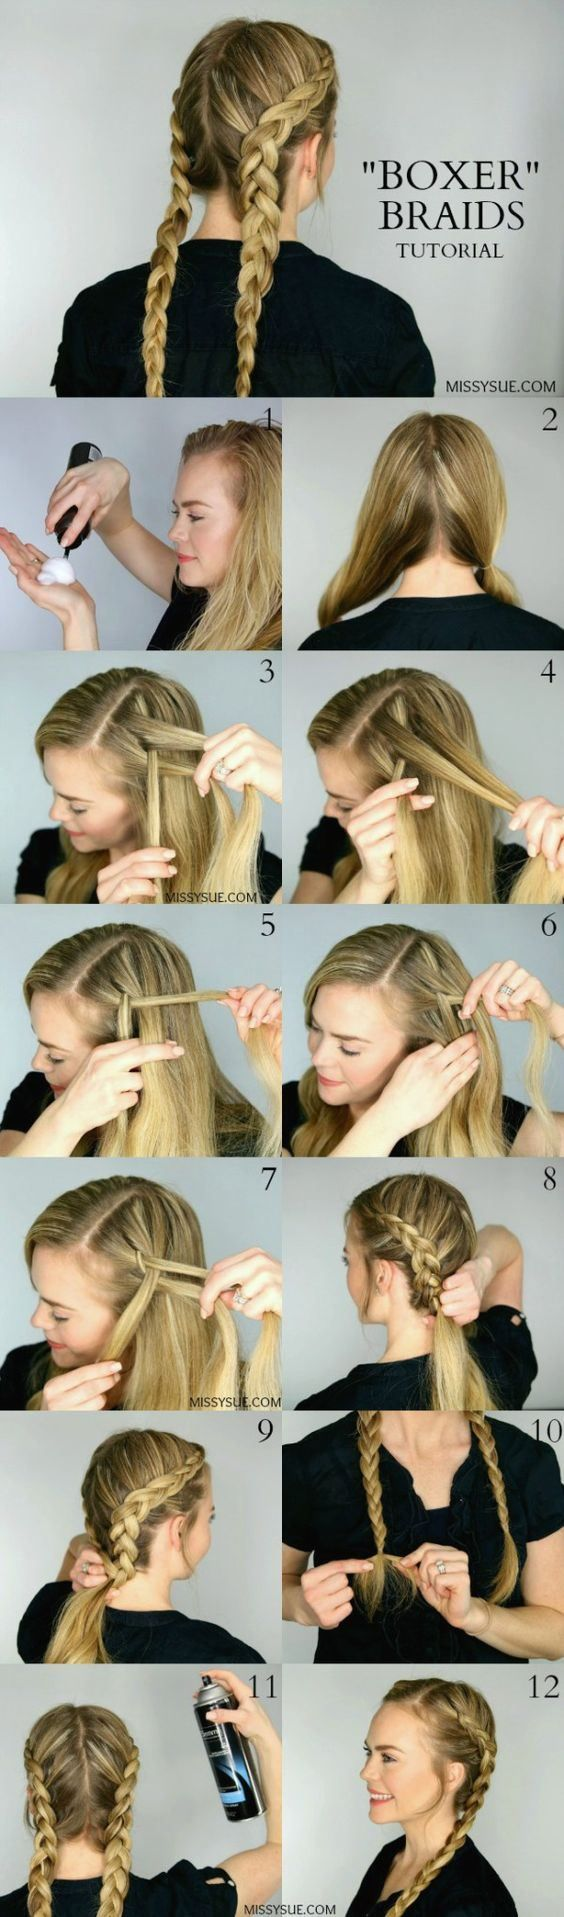 Best Hair Tutorials -Step By Step Tutorials